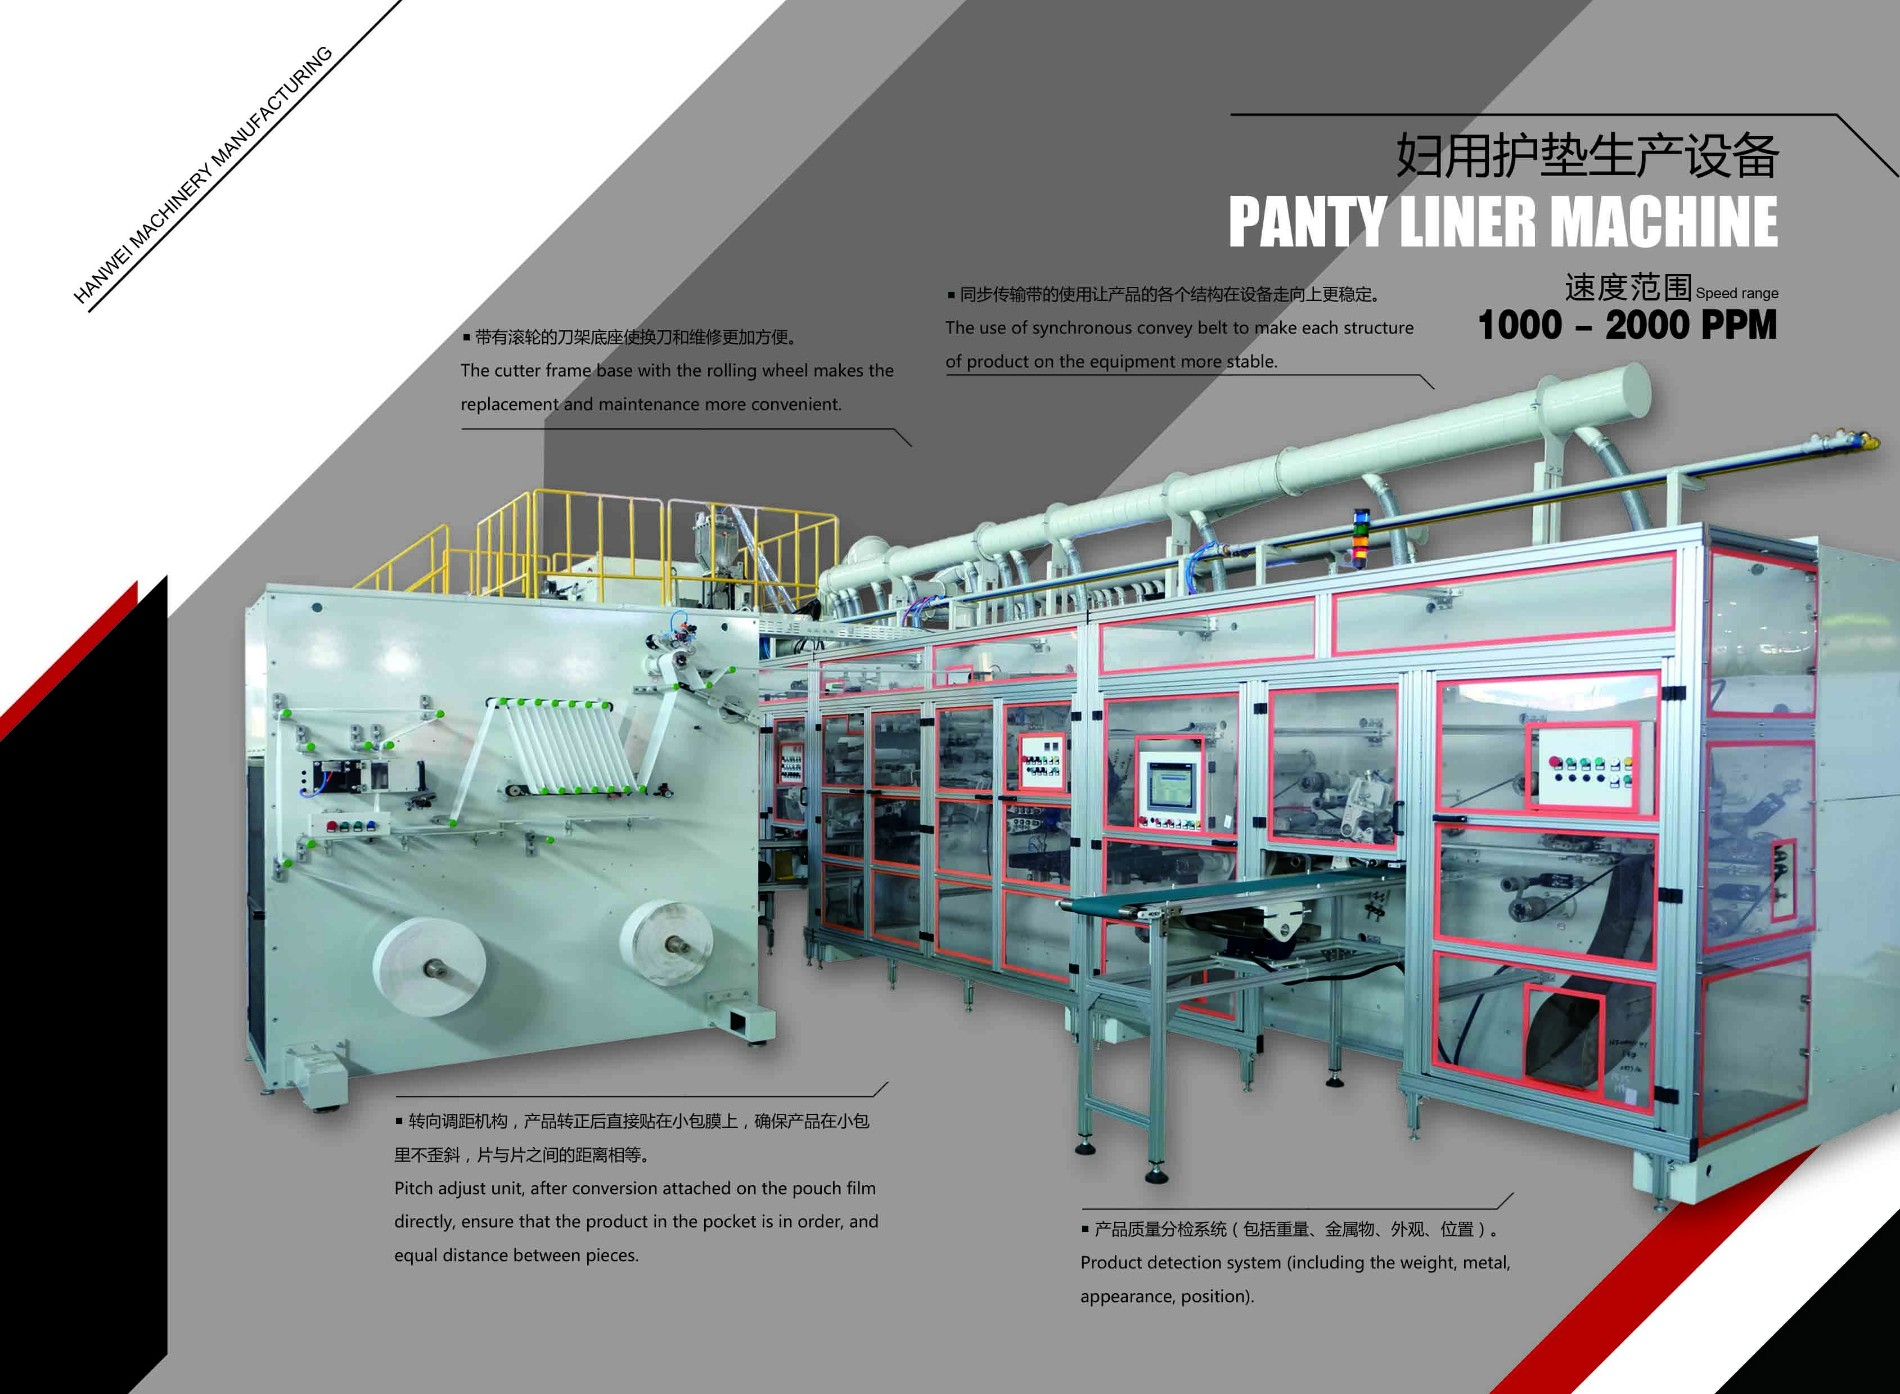 High quality Panty Liner Machine Quotes,China Panty Liner Machine Factory,Panty Liner Machine Purchasing